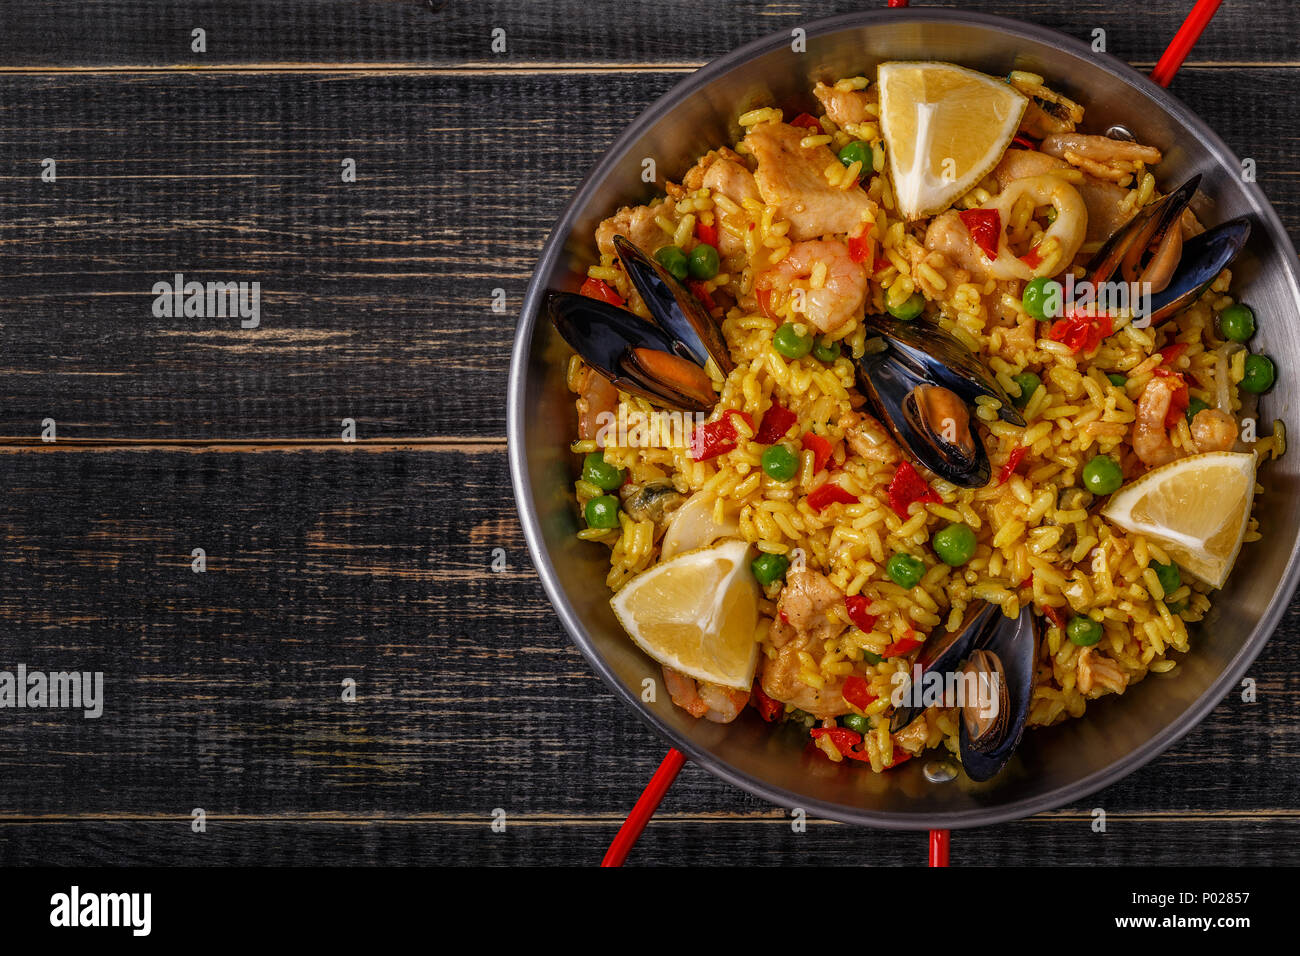 Paella with chicken,  seafood, vegetables and saffron served in the traditional pan, top view. - Stock Image